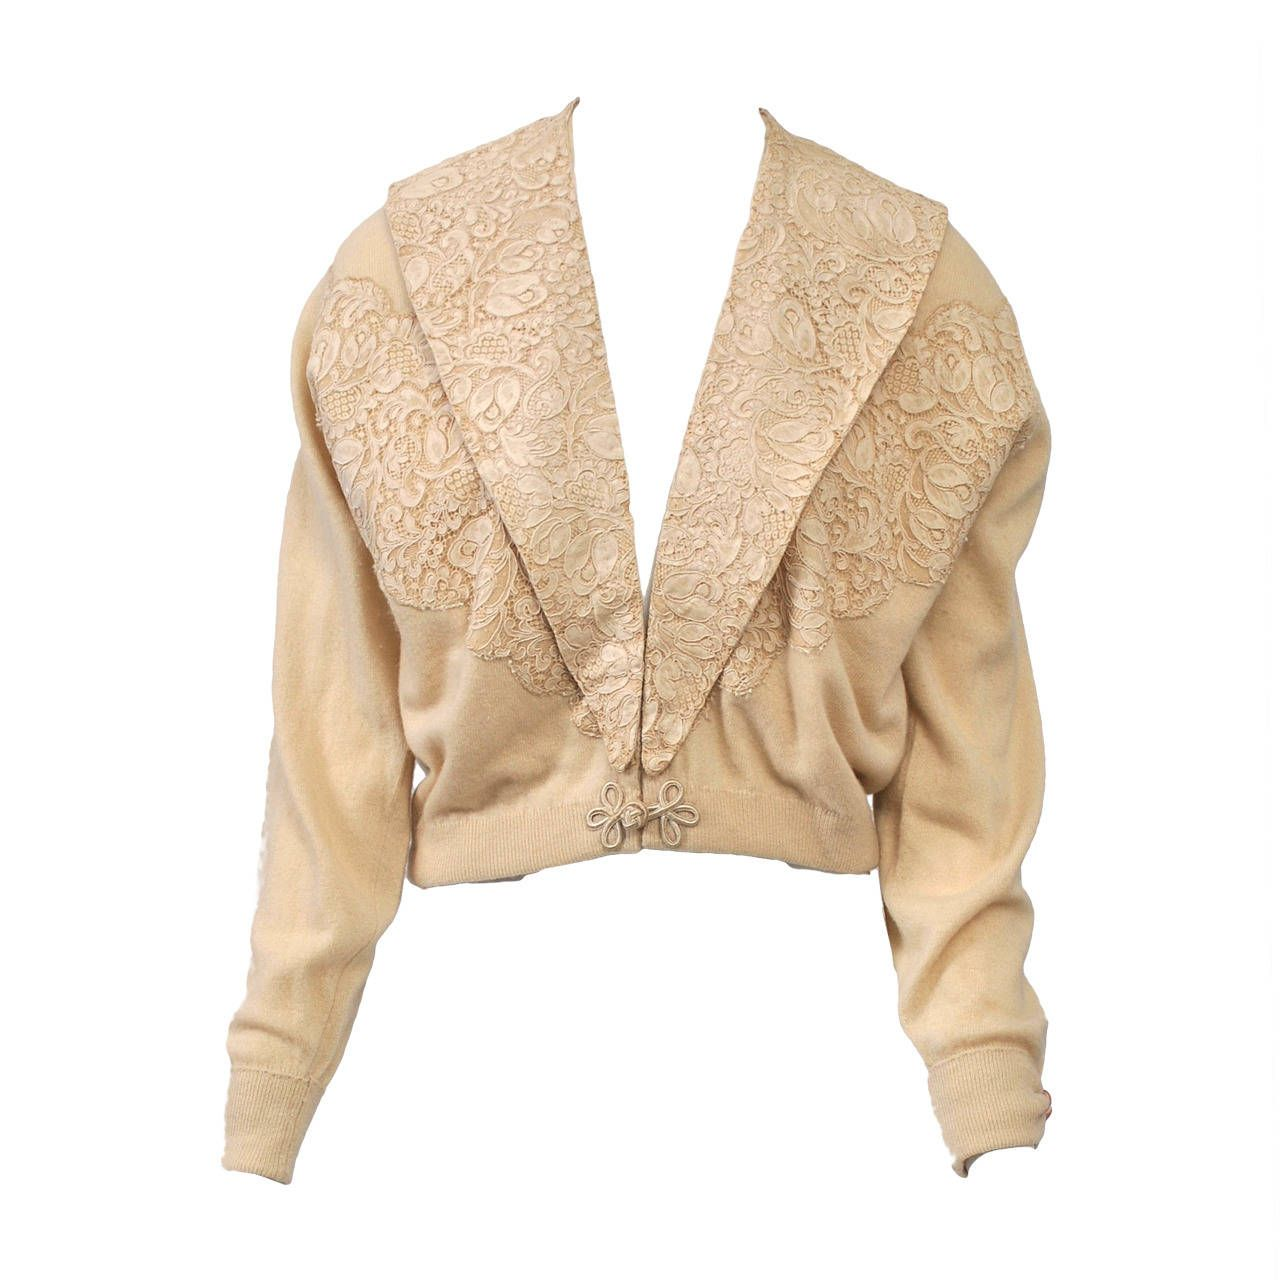 Beige Cashmere Cardigan with Lace | CASHMERE | Pinterest ...